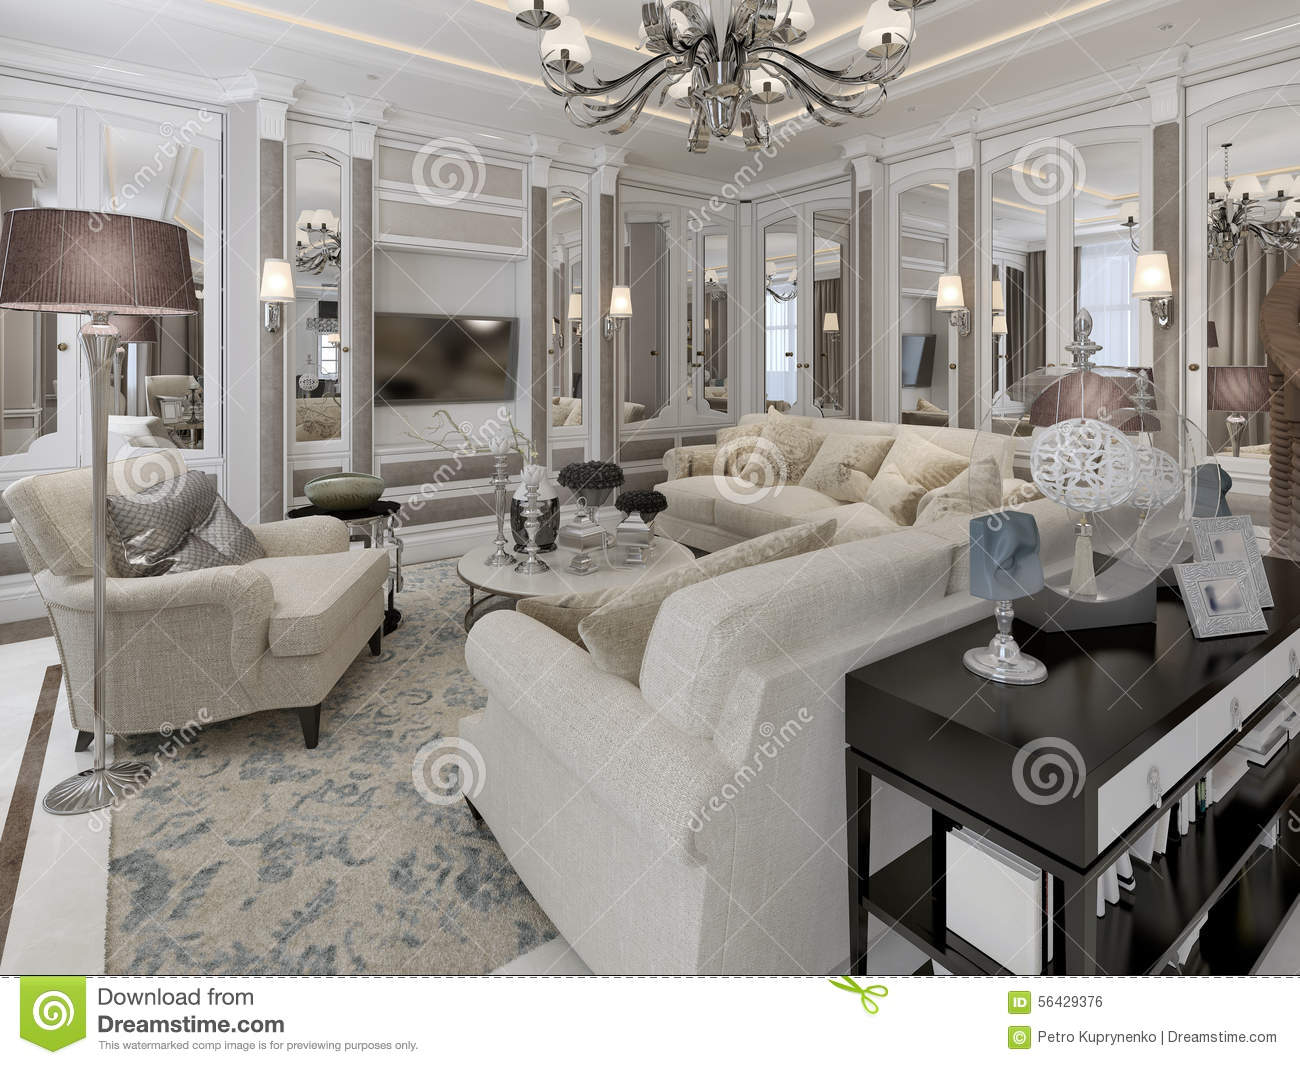 salon de style d 39 art d co illustration stock image 56429376. Black Bedroom Furniture Sets. Home Design Ideas